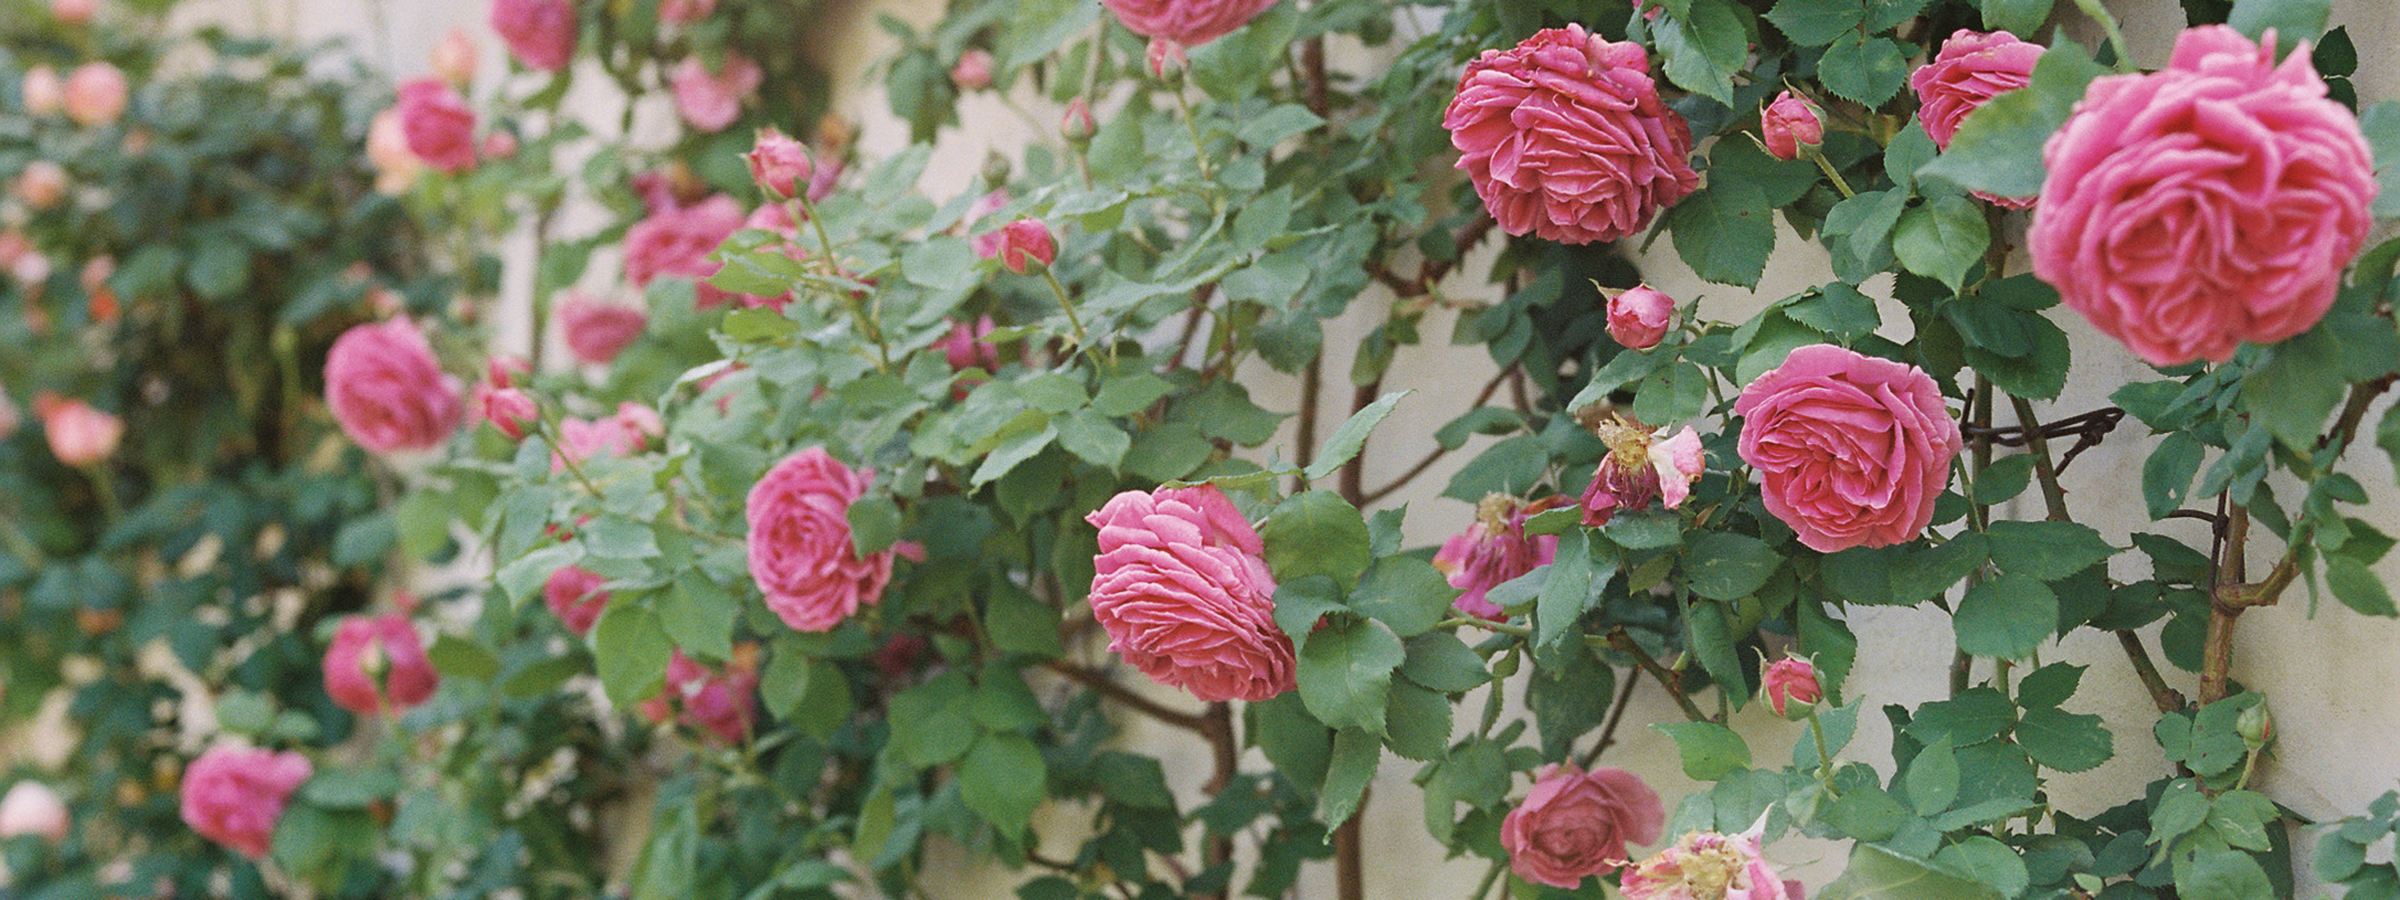 Flutter Magazine Issue 17 provenc climbing roses at clos saint esteve farmhouse